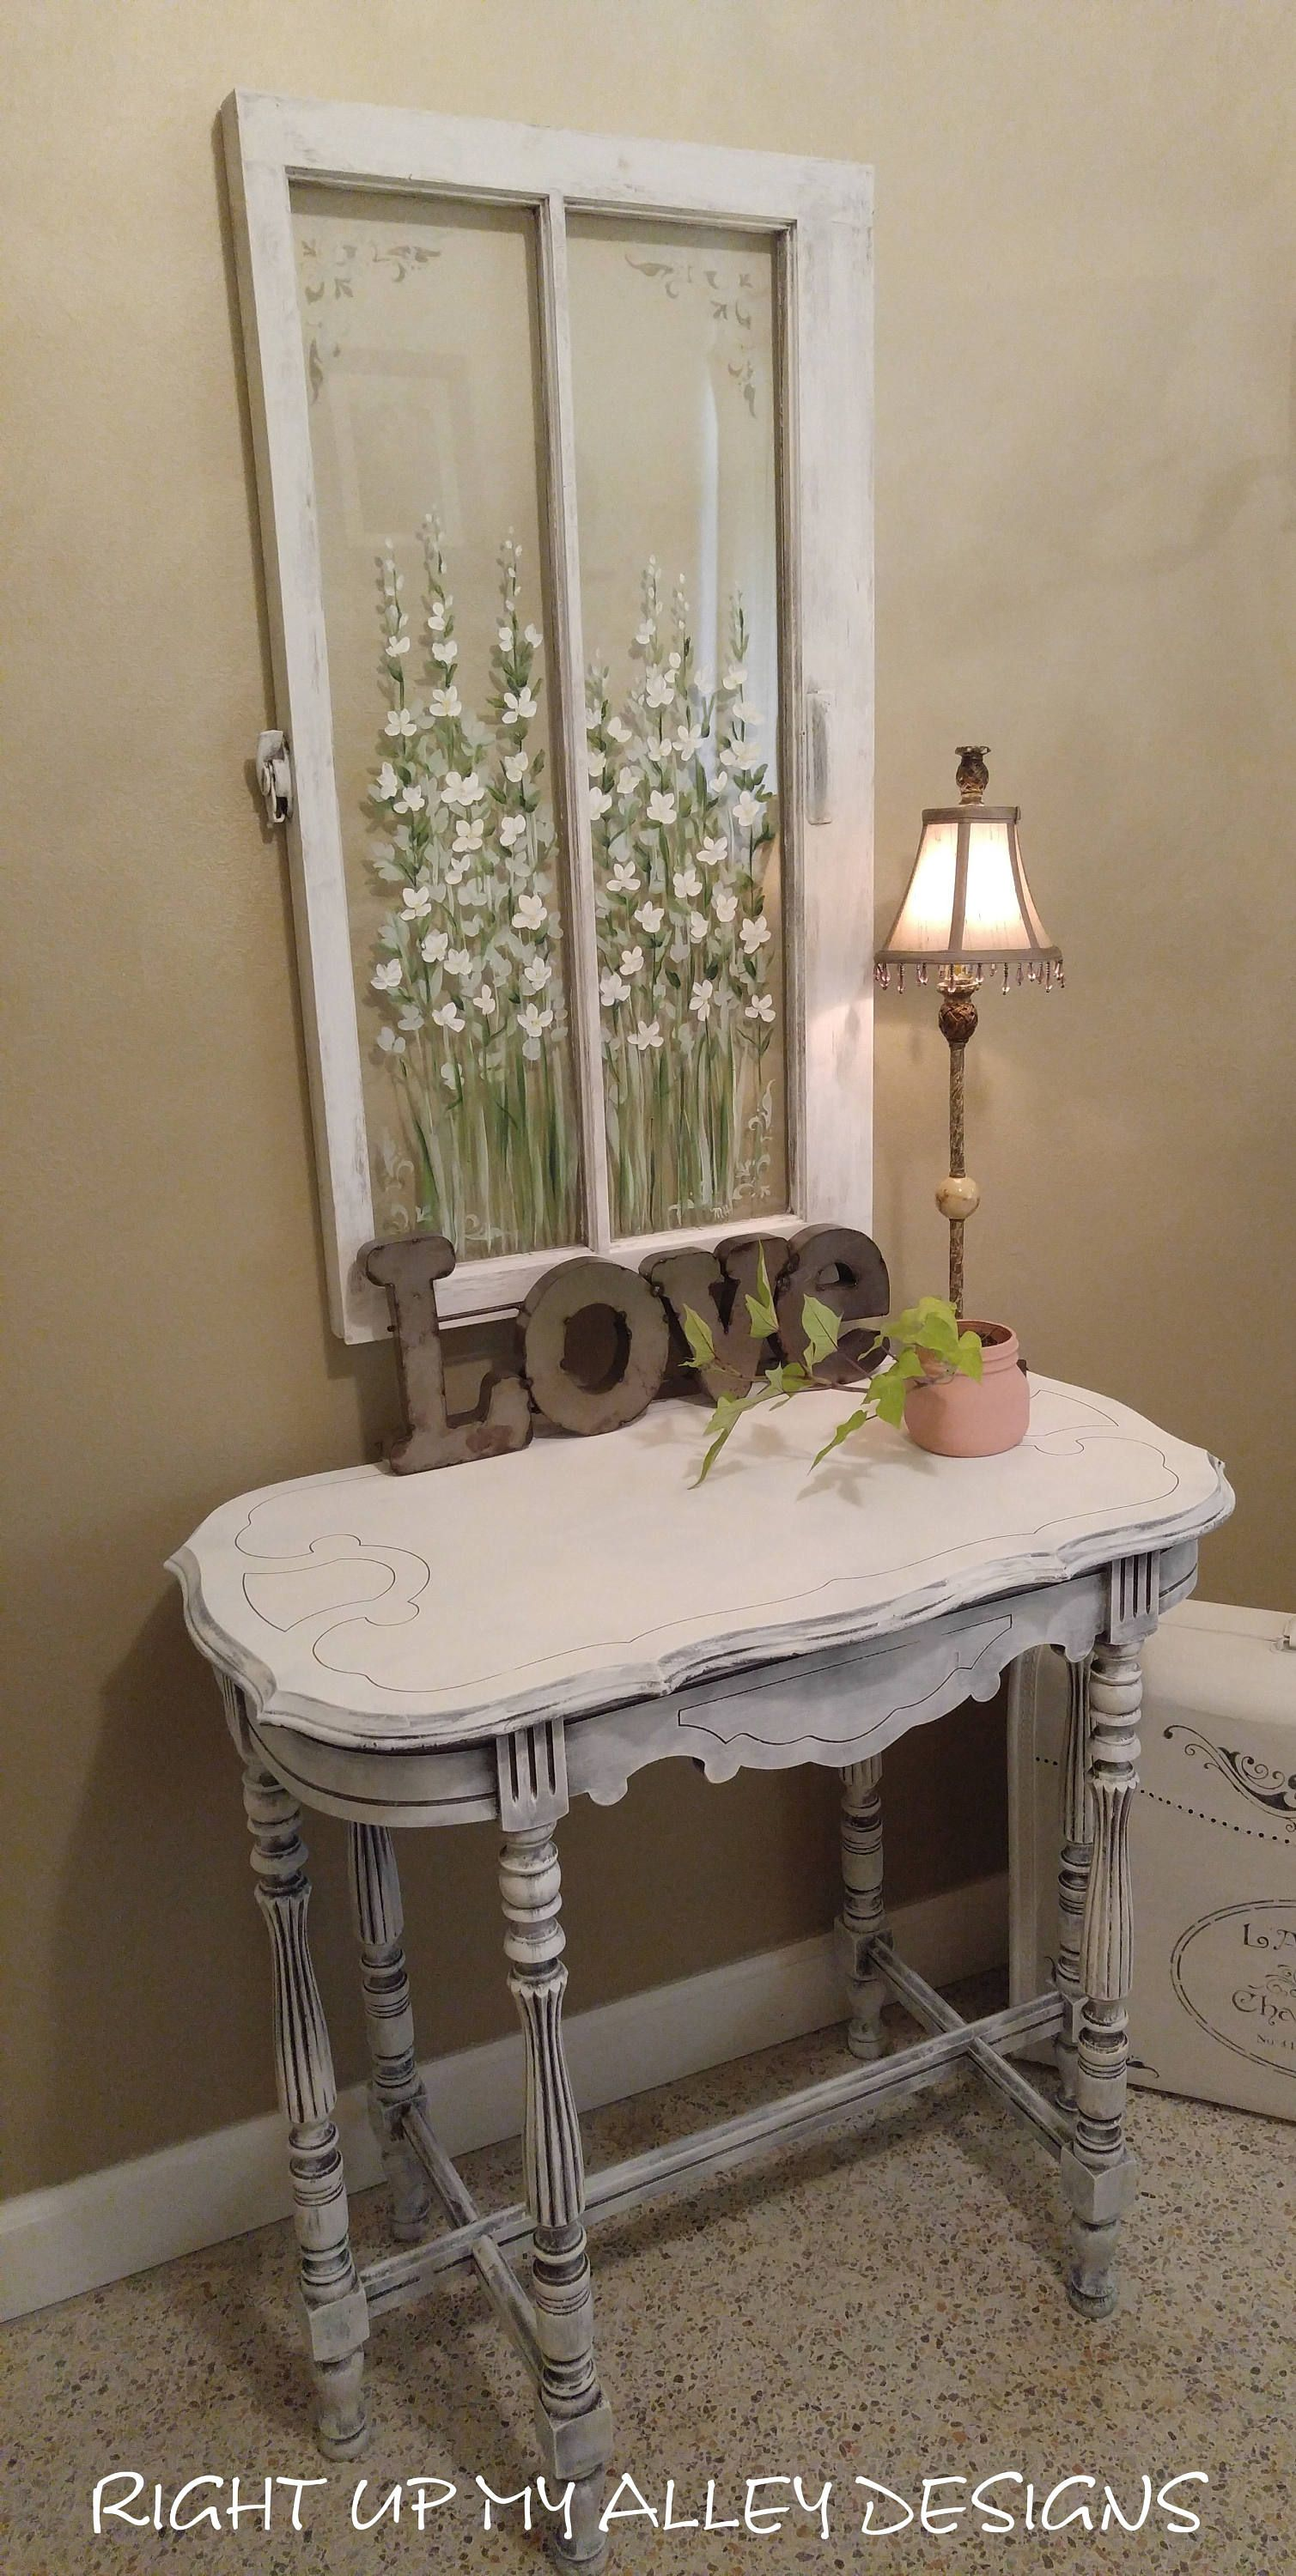 Fantastic furniture hallway table  Old painted tableshabby chic decorpainted furniturewhite